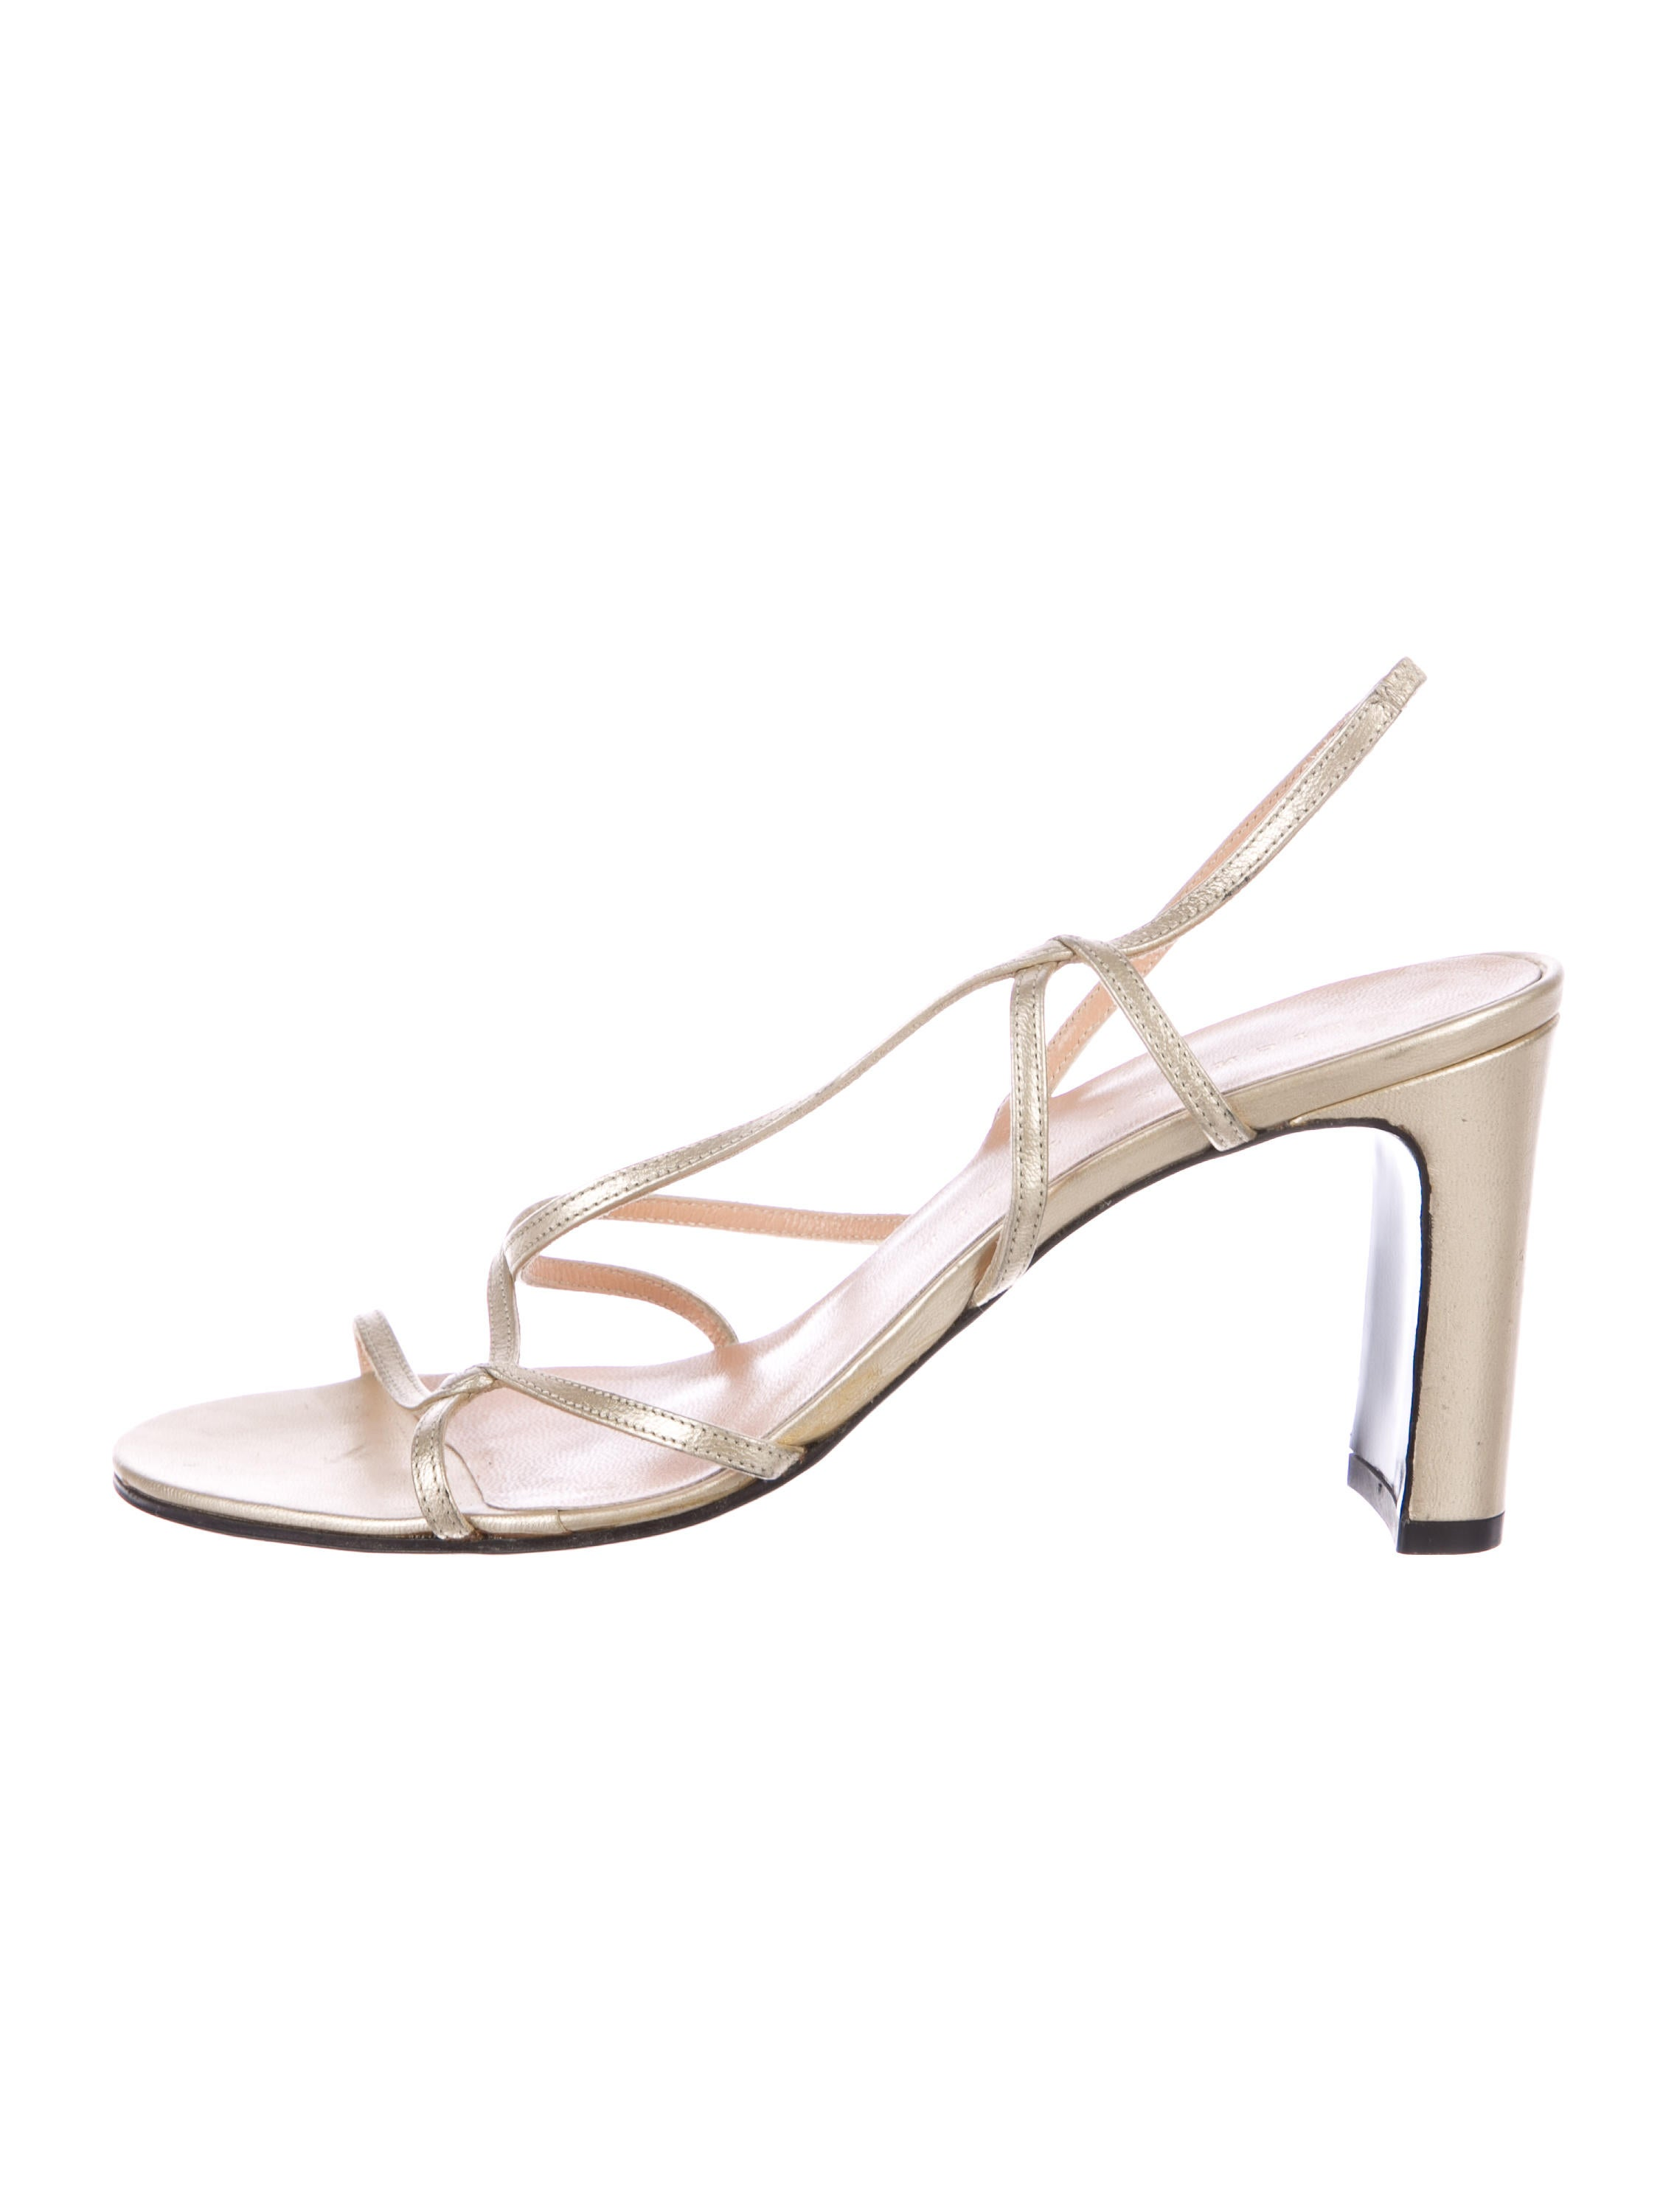 outlet wholesale price Richard Tyler Metallic Leather Sandals free shipping pay with visa authentic 7N34M9K